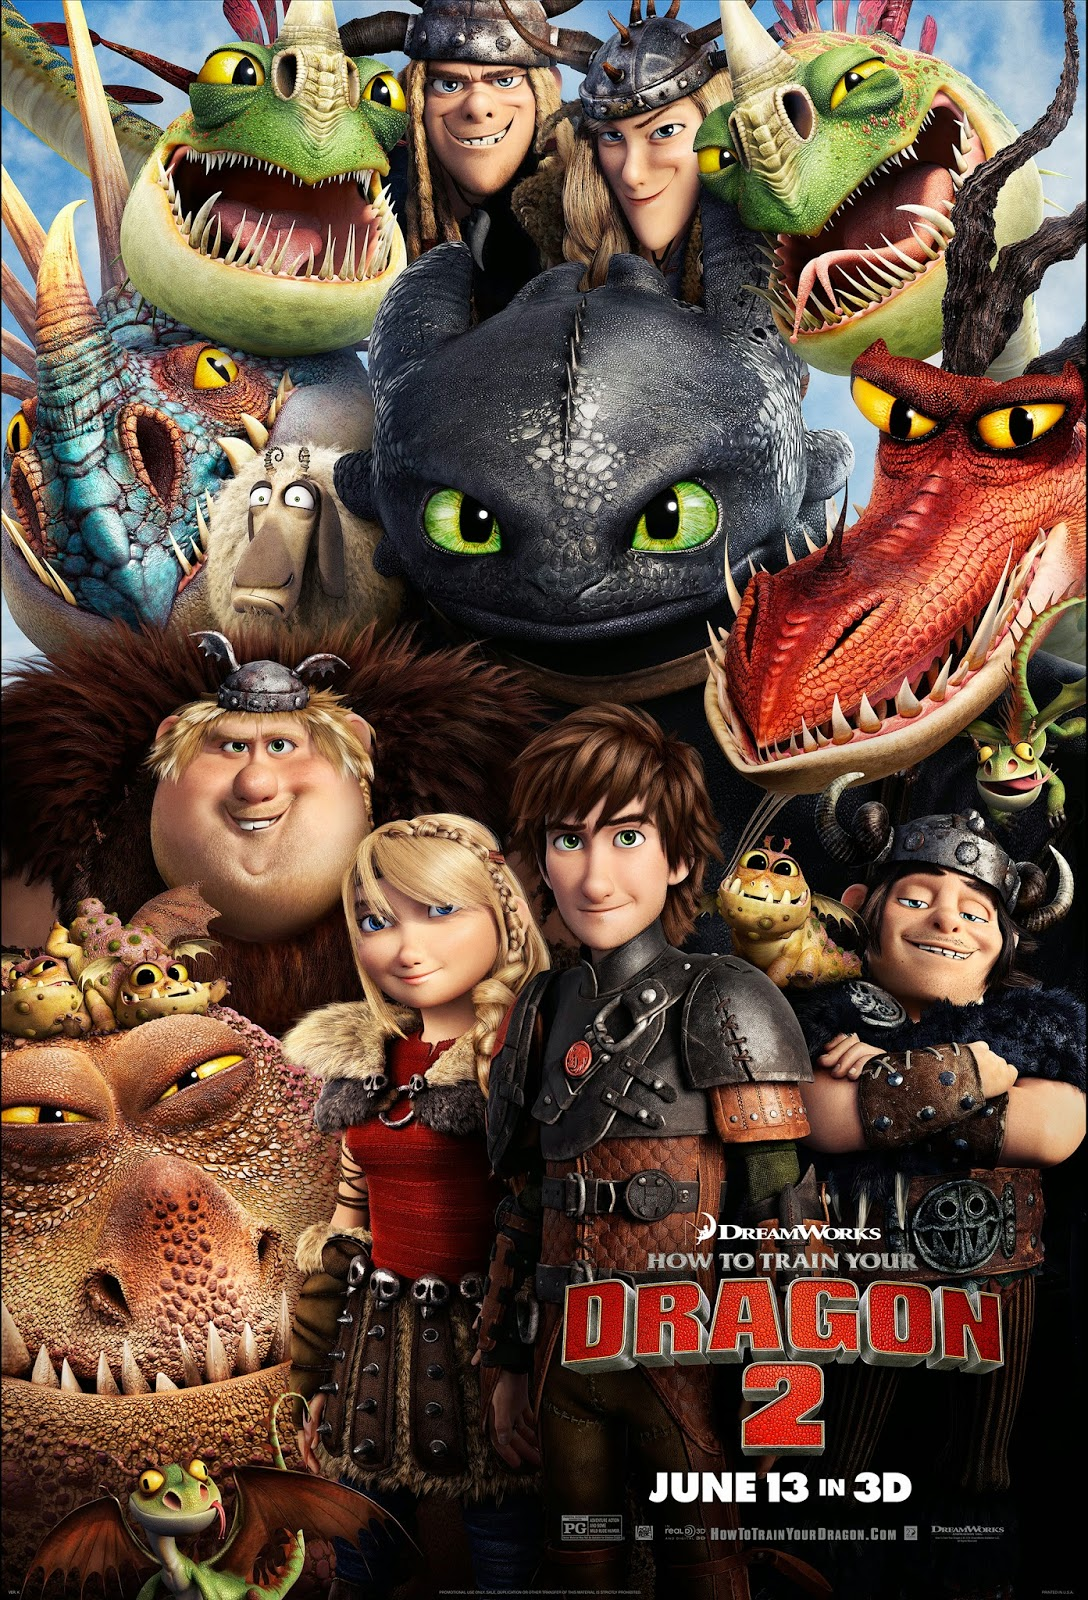 'How to Train Your Dragon 2′ soars to fantastic new heights